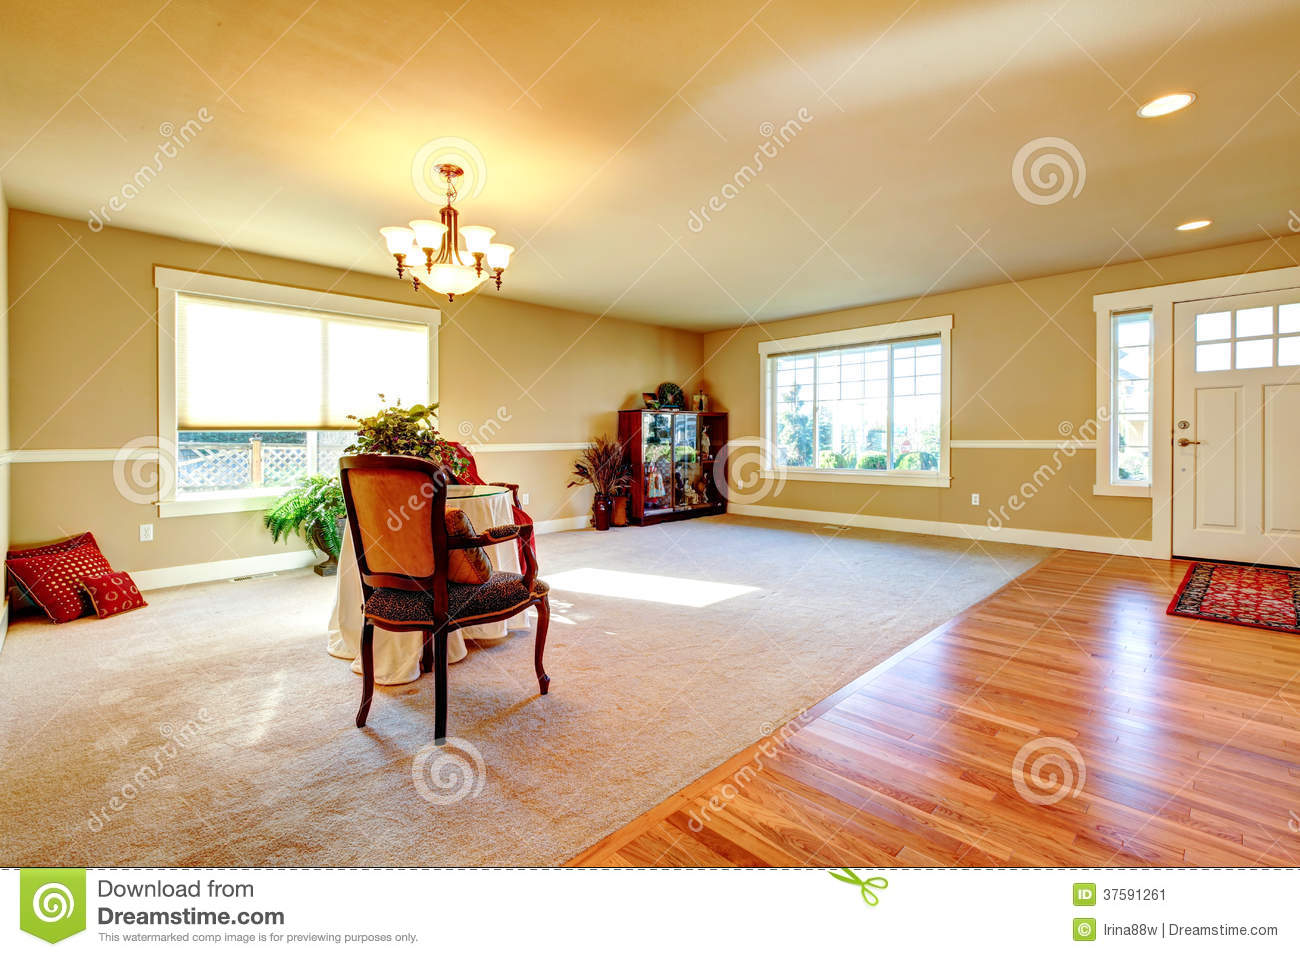 Open Plan Design Entrance Hallway And Living Room Stock Image Image 37591261